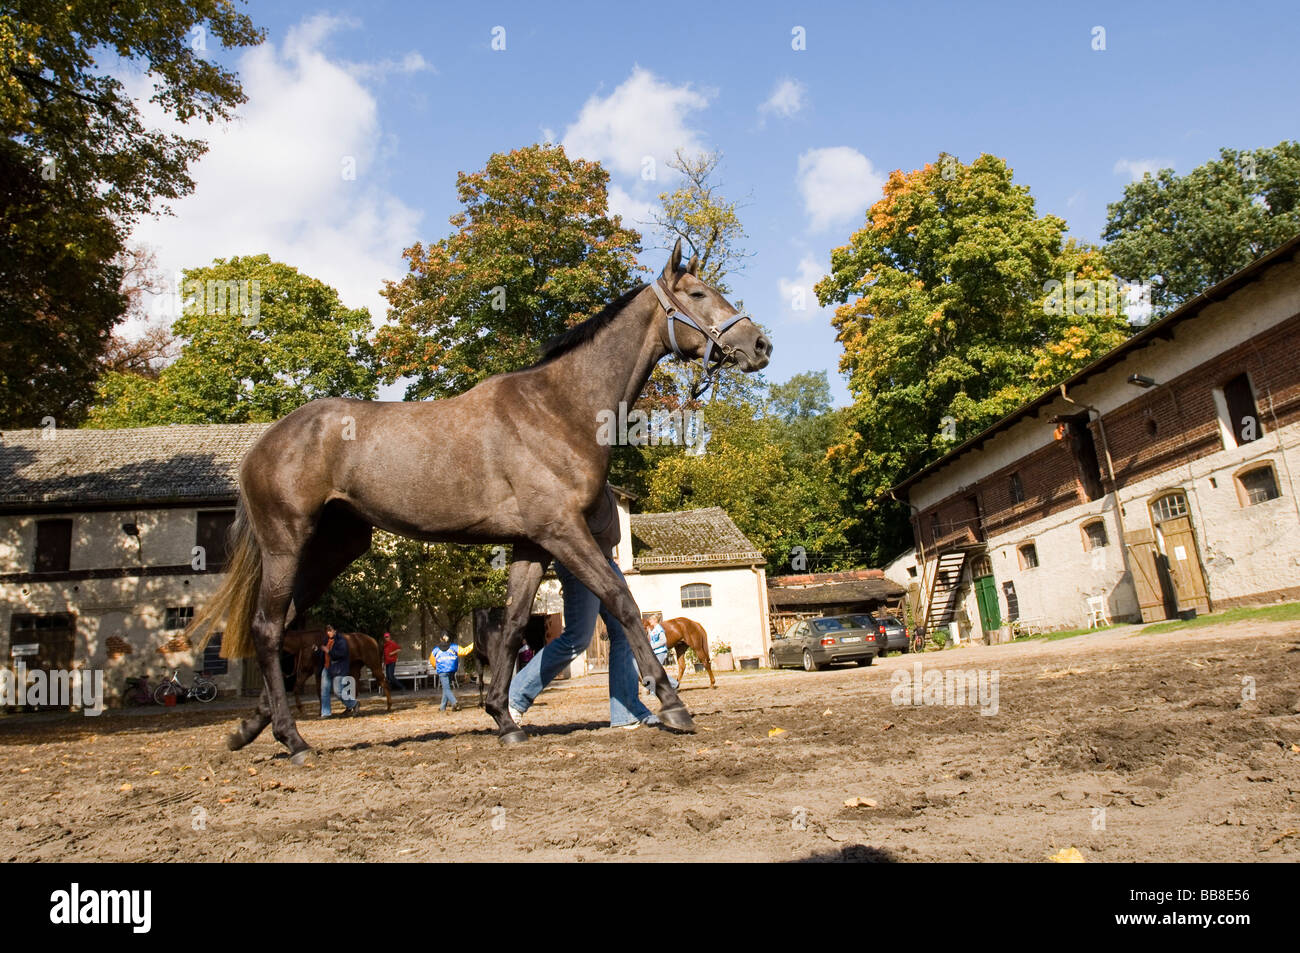 Racehorse being lead to the stables of Hoppegarten Racecourse after a race, Berlin, Germany, Europe - Stock Image